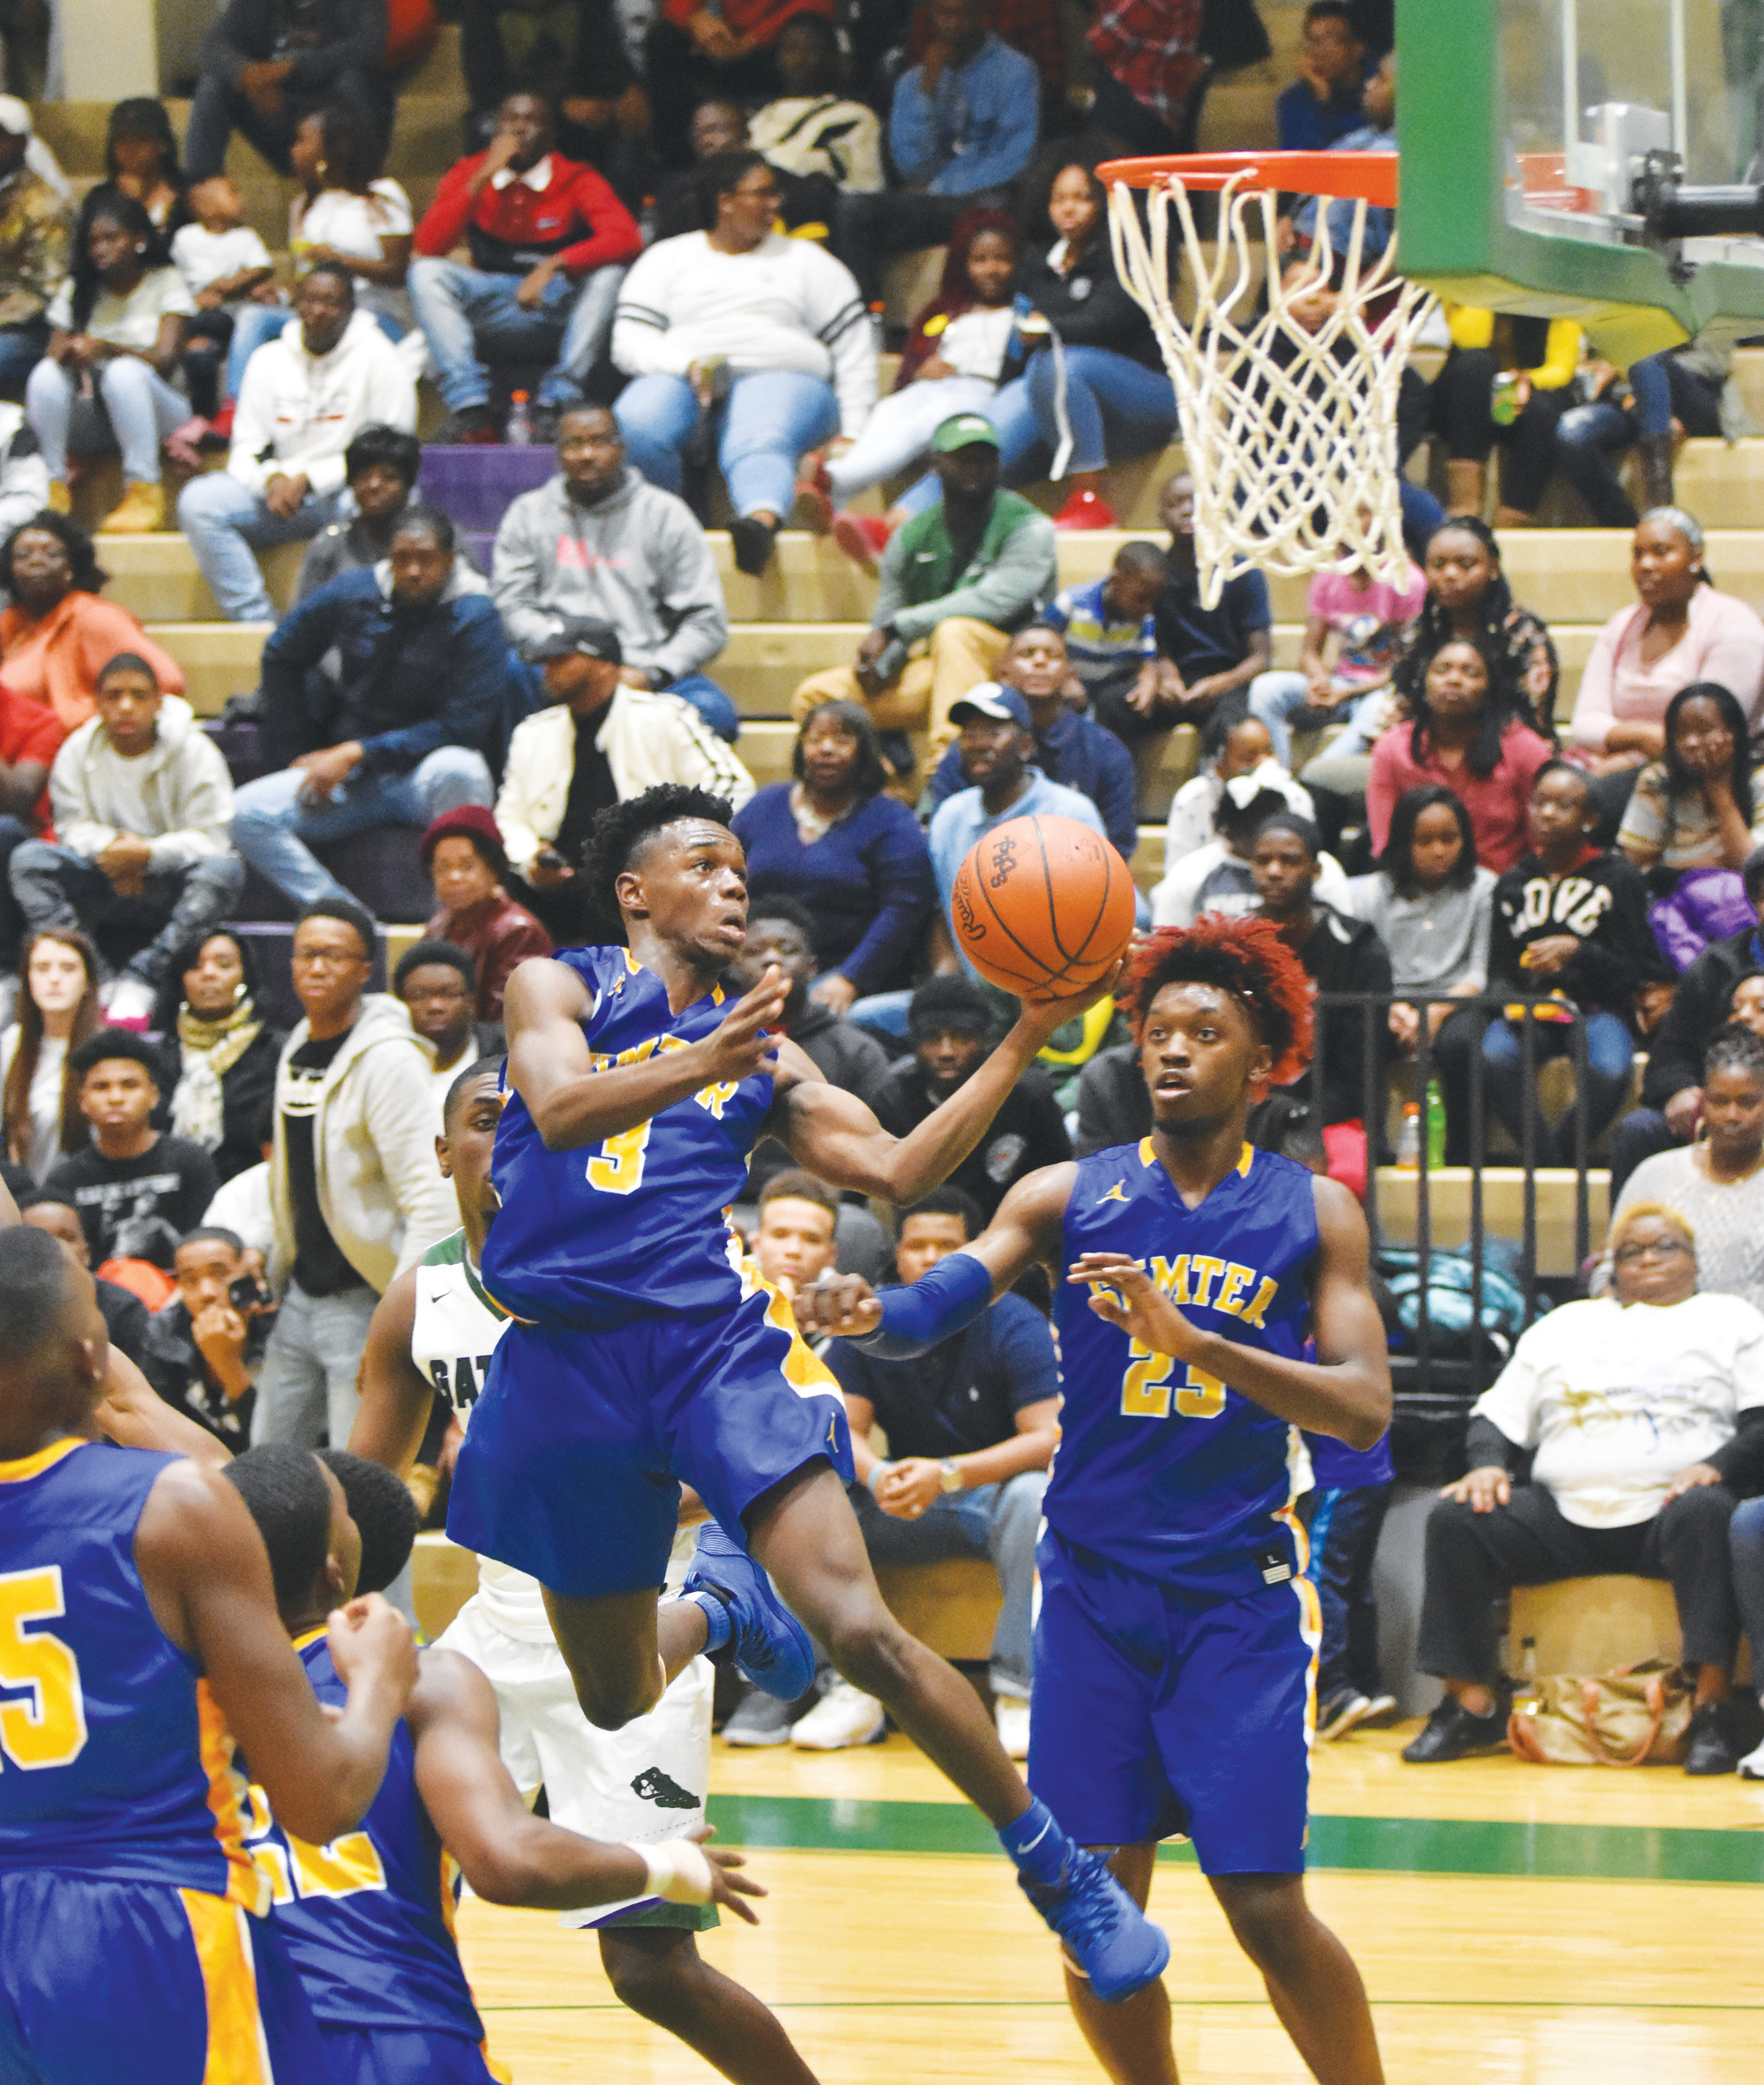 Sumter's Tyree Smalls (3) attempts a layup during the fourth quarter of the Gamecocks' 70-37 victory over Lakewood on Friday at The Swamp.